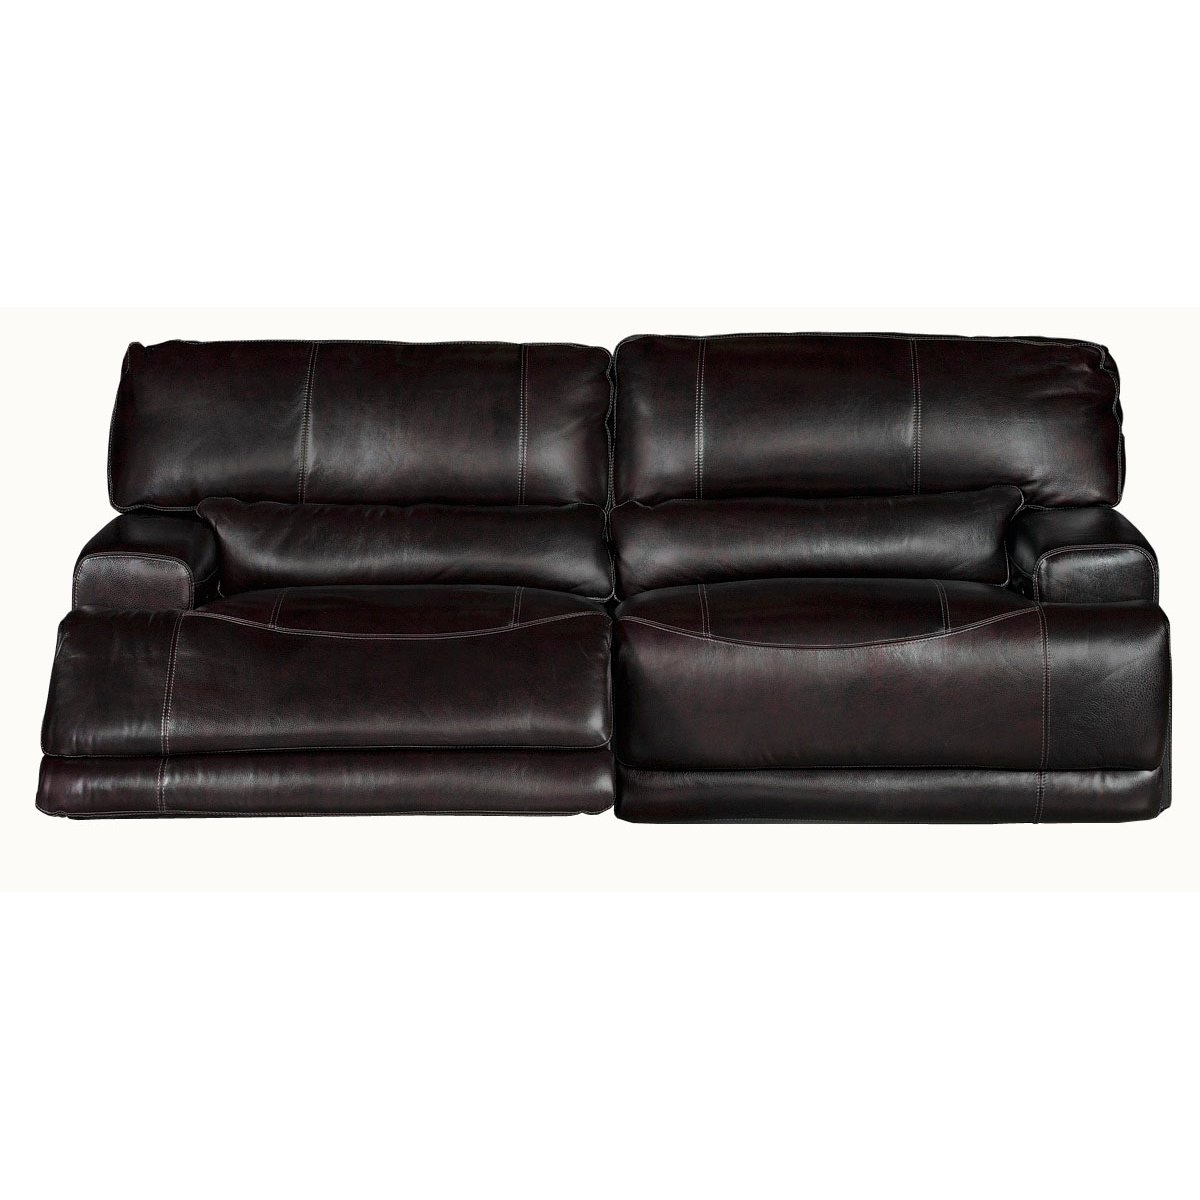 reclining living room furniture.  Blackberry Leather Match Power Reclining Sofa Stampede Get a reclining sofa for your living room or den from us RC